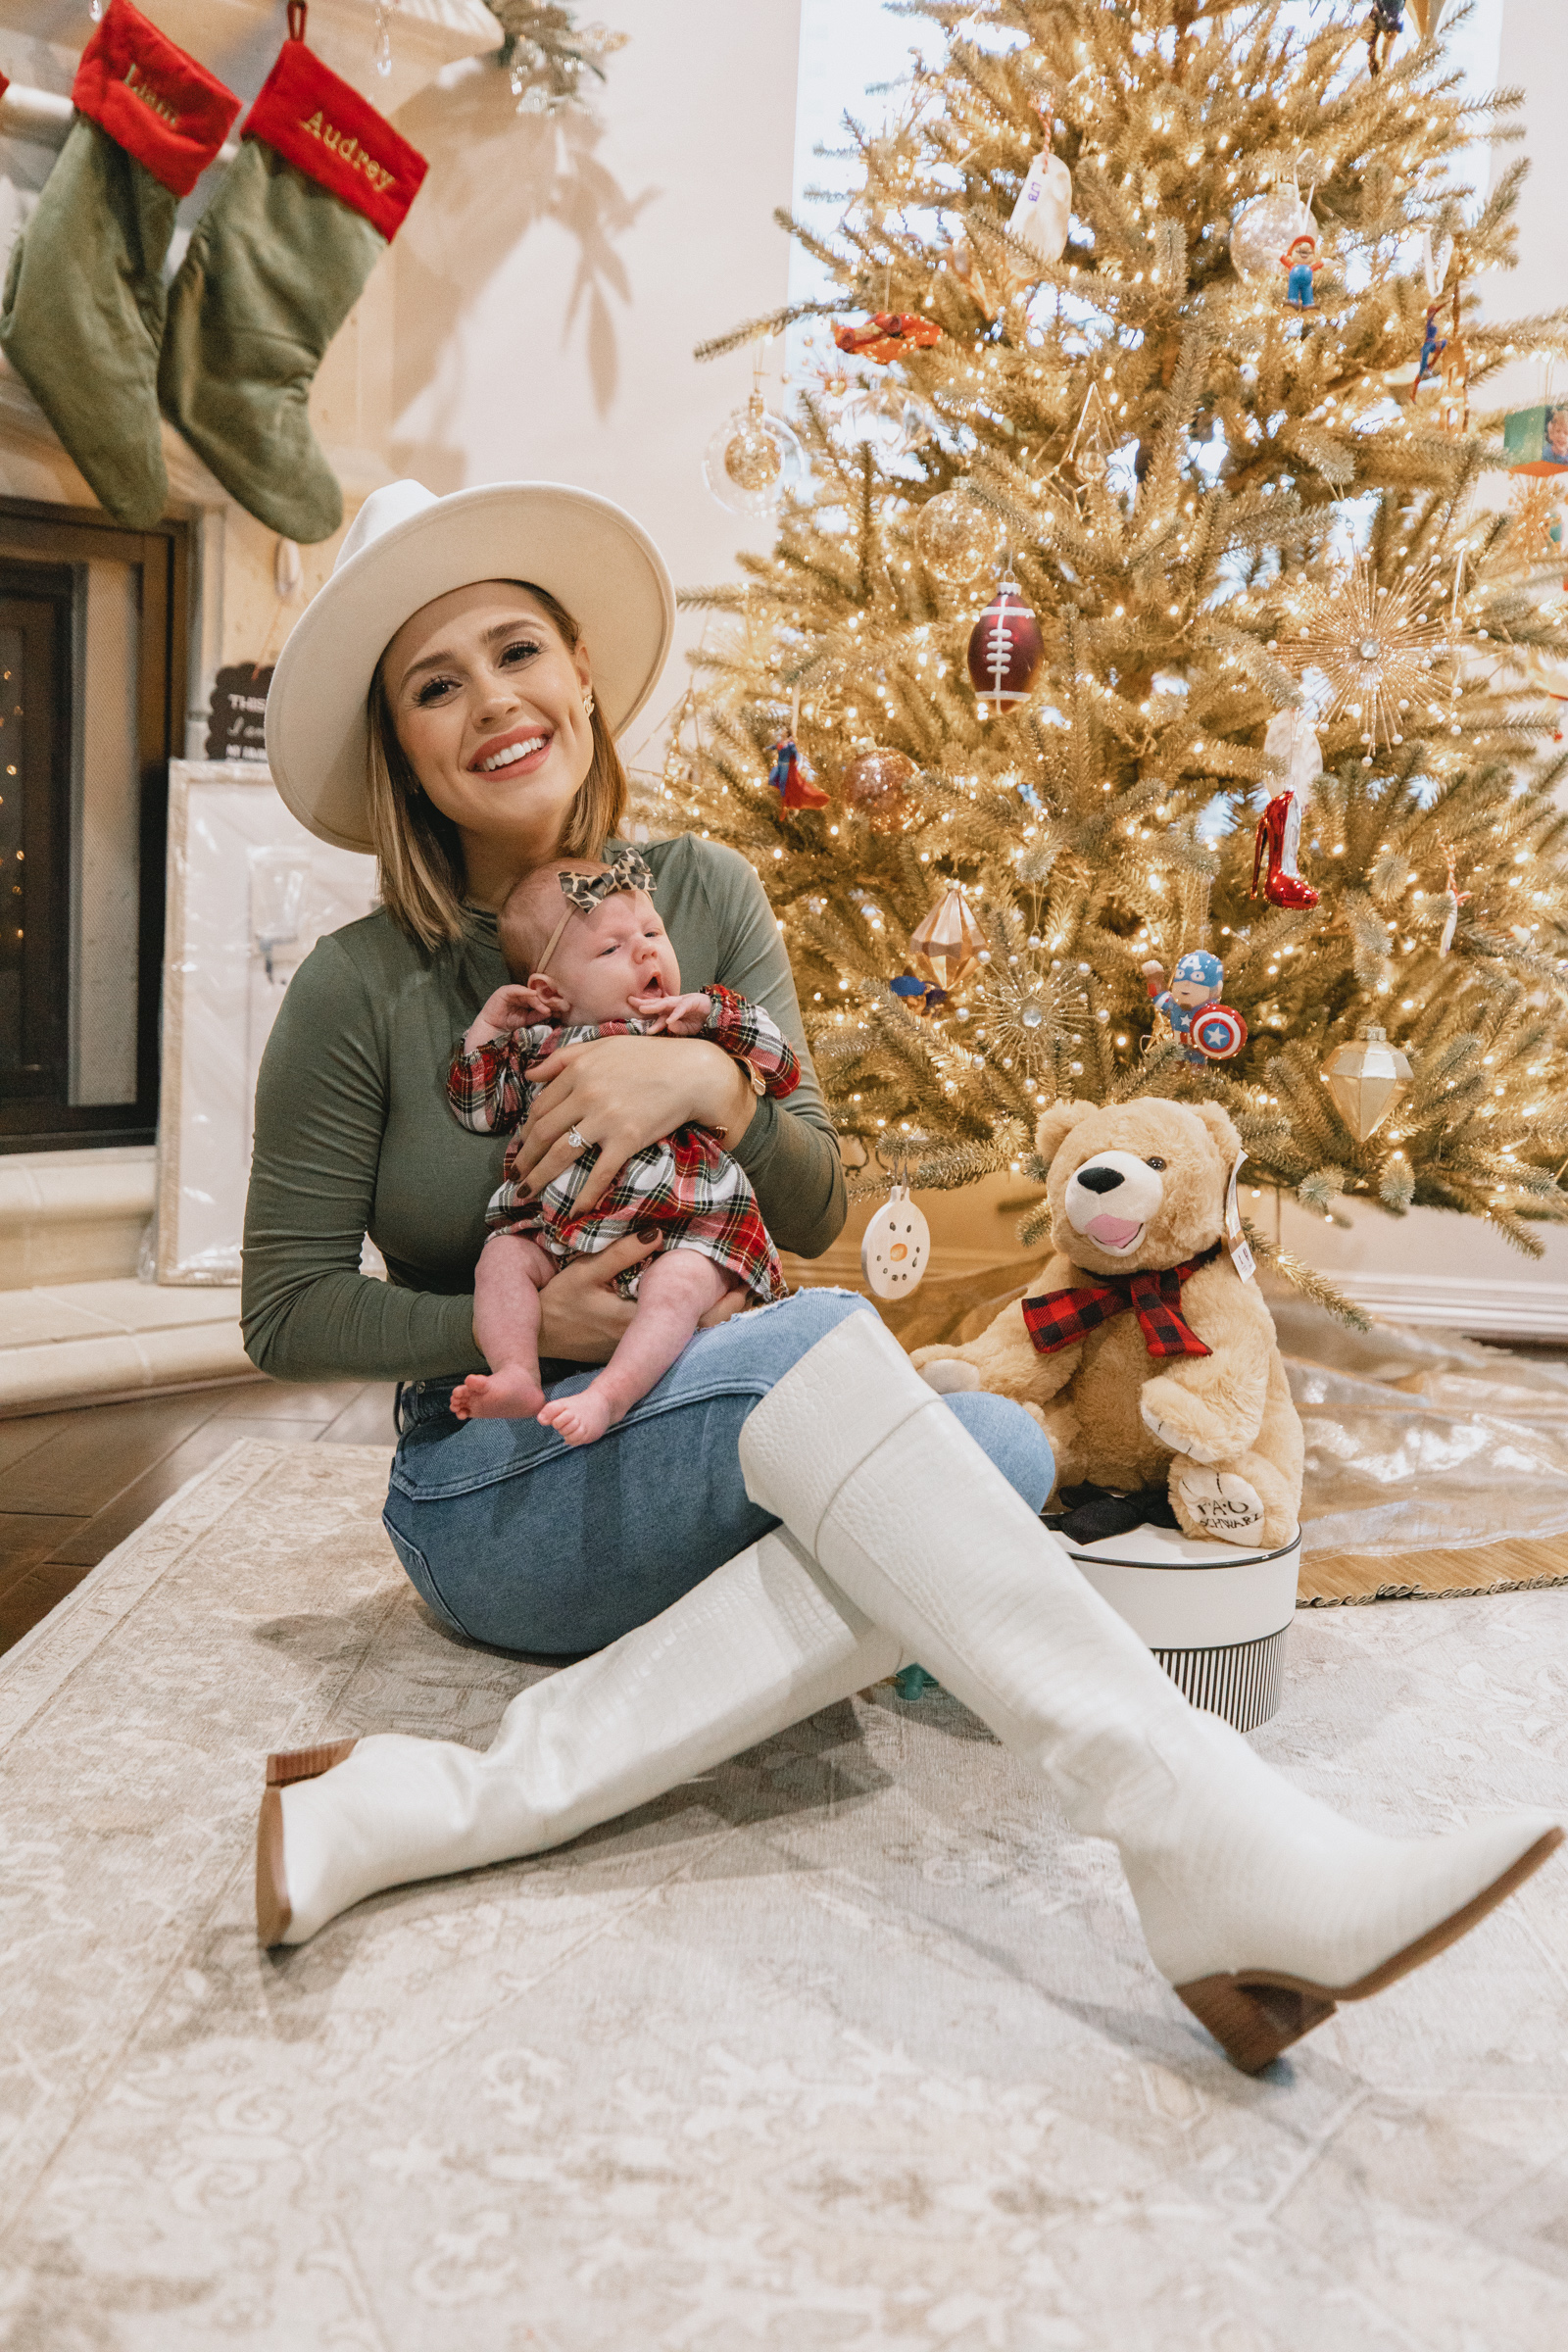 Looking for the perfect stocking stuffer gift? Houston blogger Elly Brown shares Stocking Stuffer Ideas Under $20 for everyone in the family!